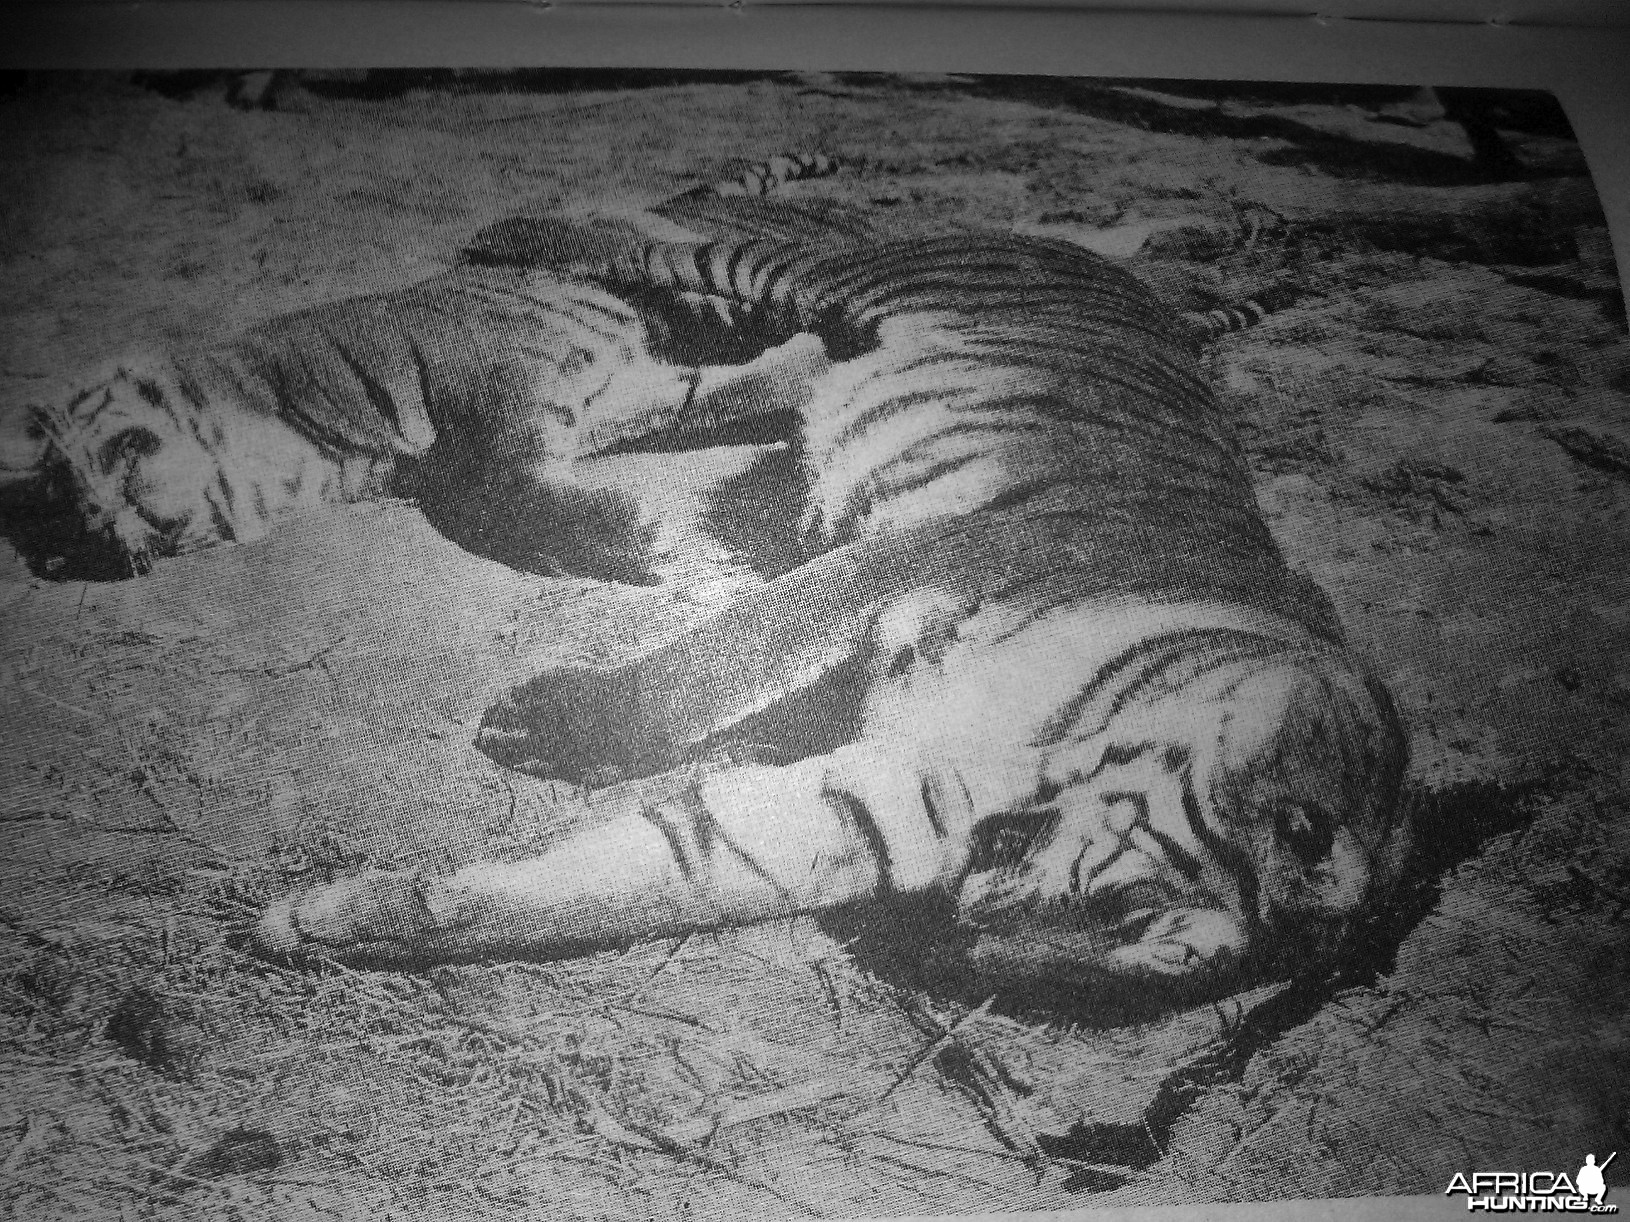 Rare Tiger hunting photographs from 1895 to 1907